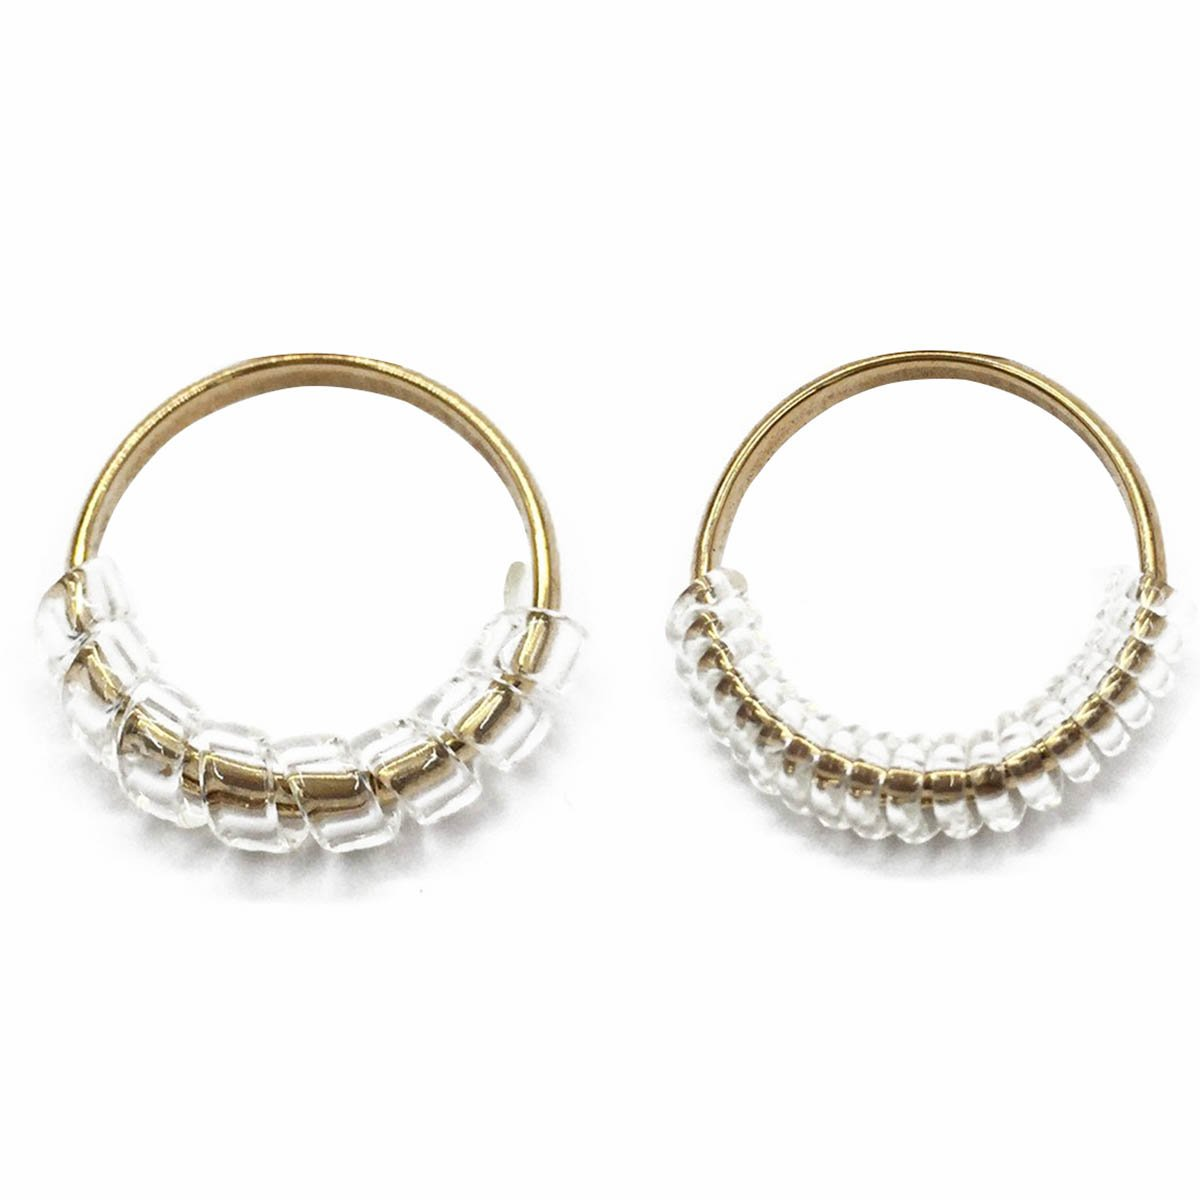 Ring Size Adjuster for Loose Rings with Jewelry Polishing Cloth Set of 30 Transparent Ring Gaurd Ring Spacer